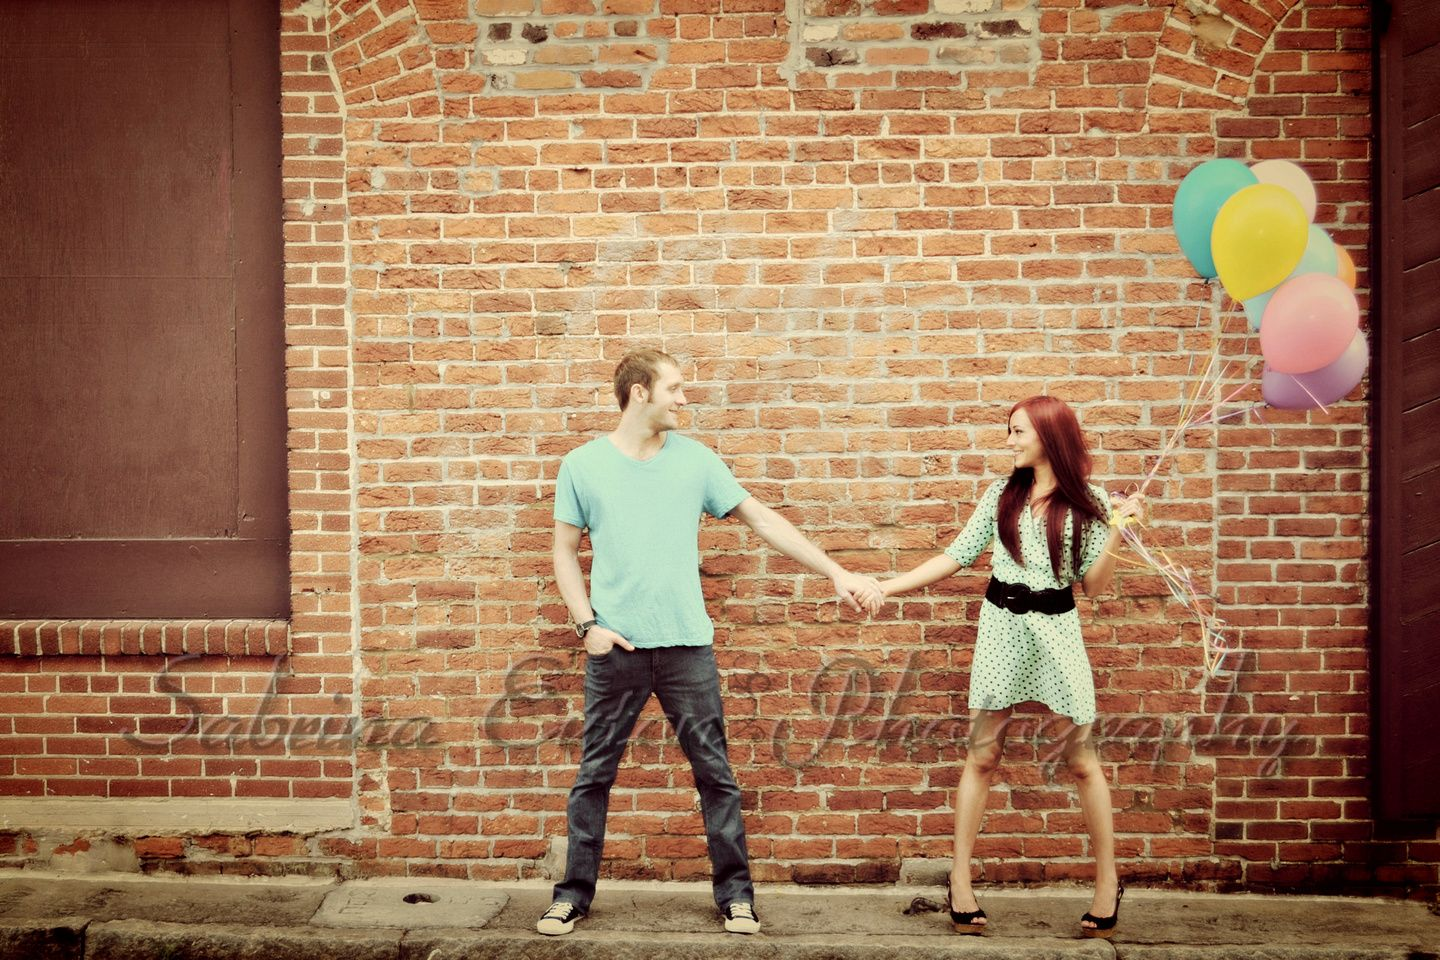 Brick wall + Balloons + Cute Couple = Love engagement and couple ...